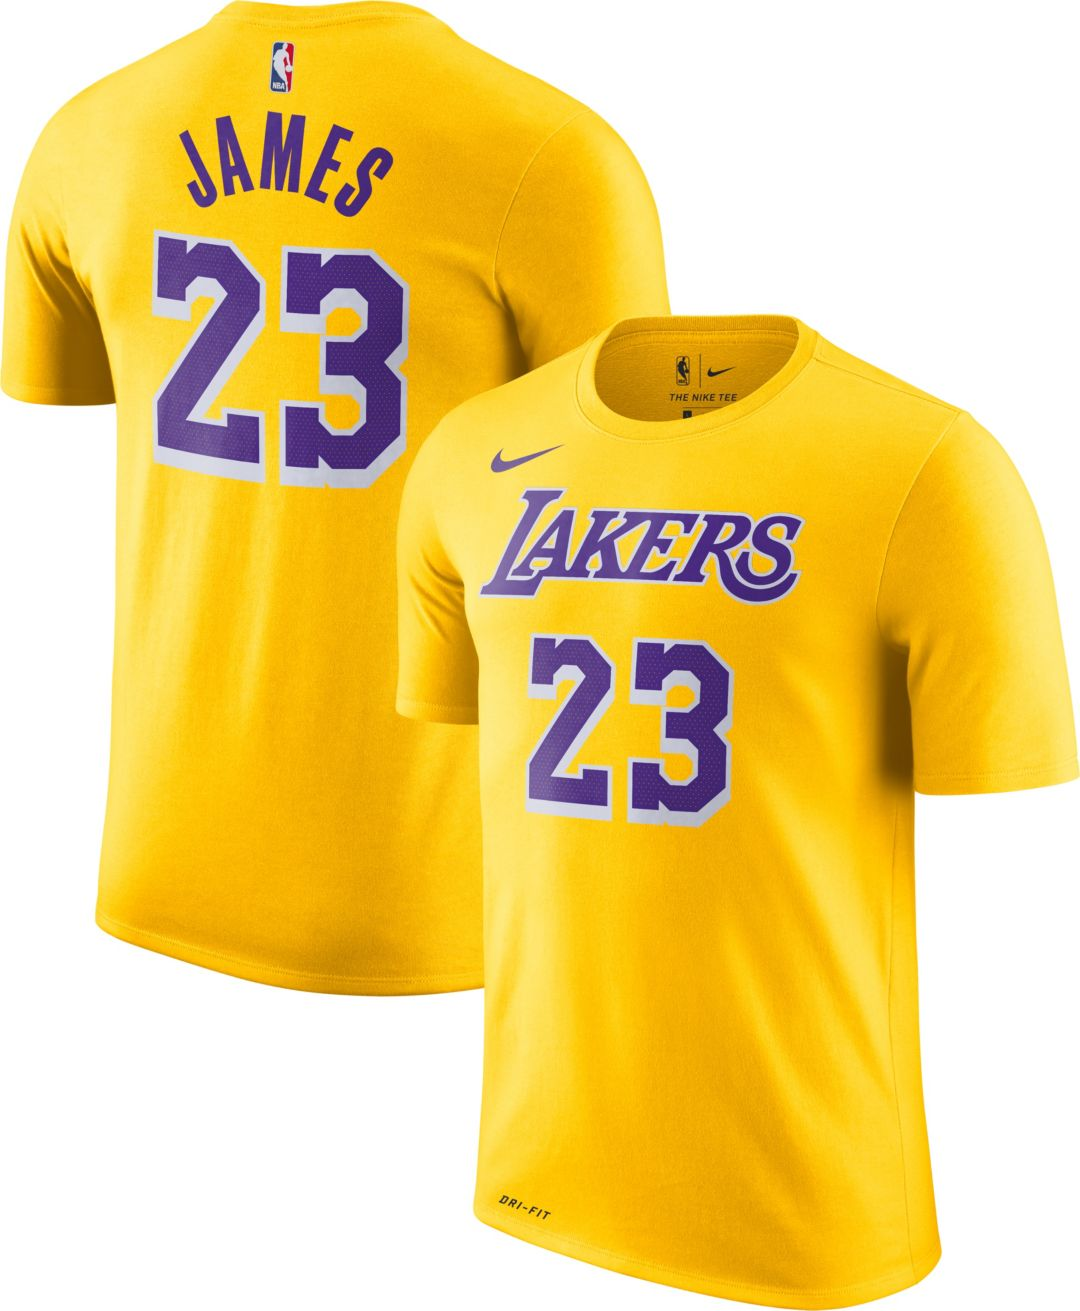 brand new 4faae 39e1d Nike Youth Los Angeles Lakers LeBron James Dri-FIT Gold T-Shirt